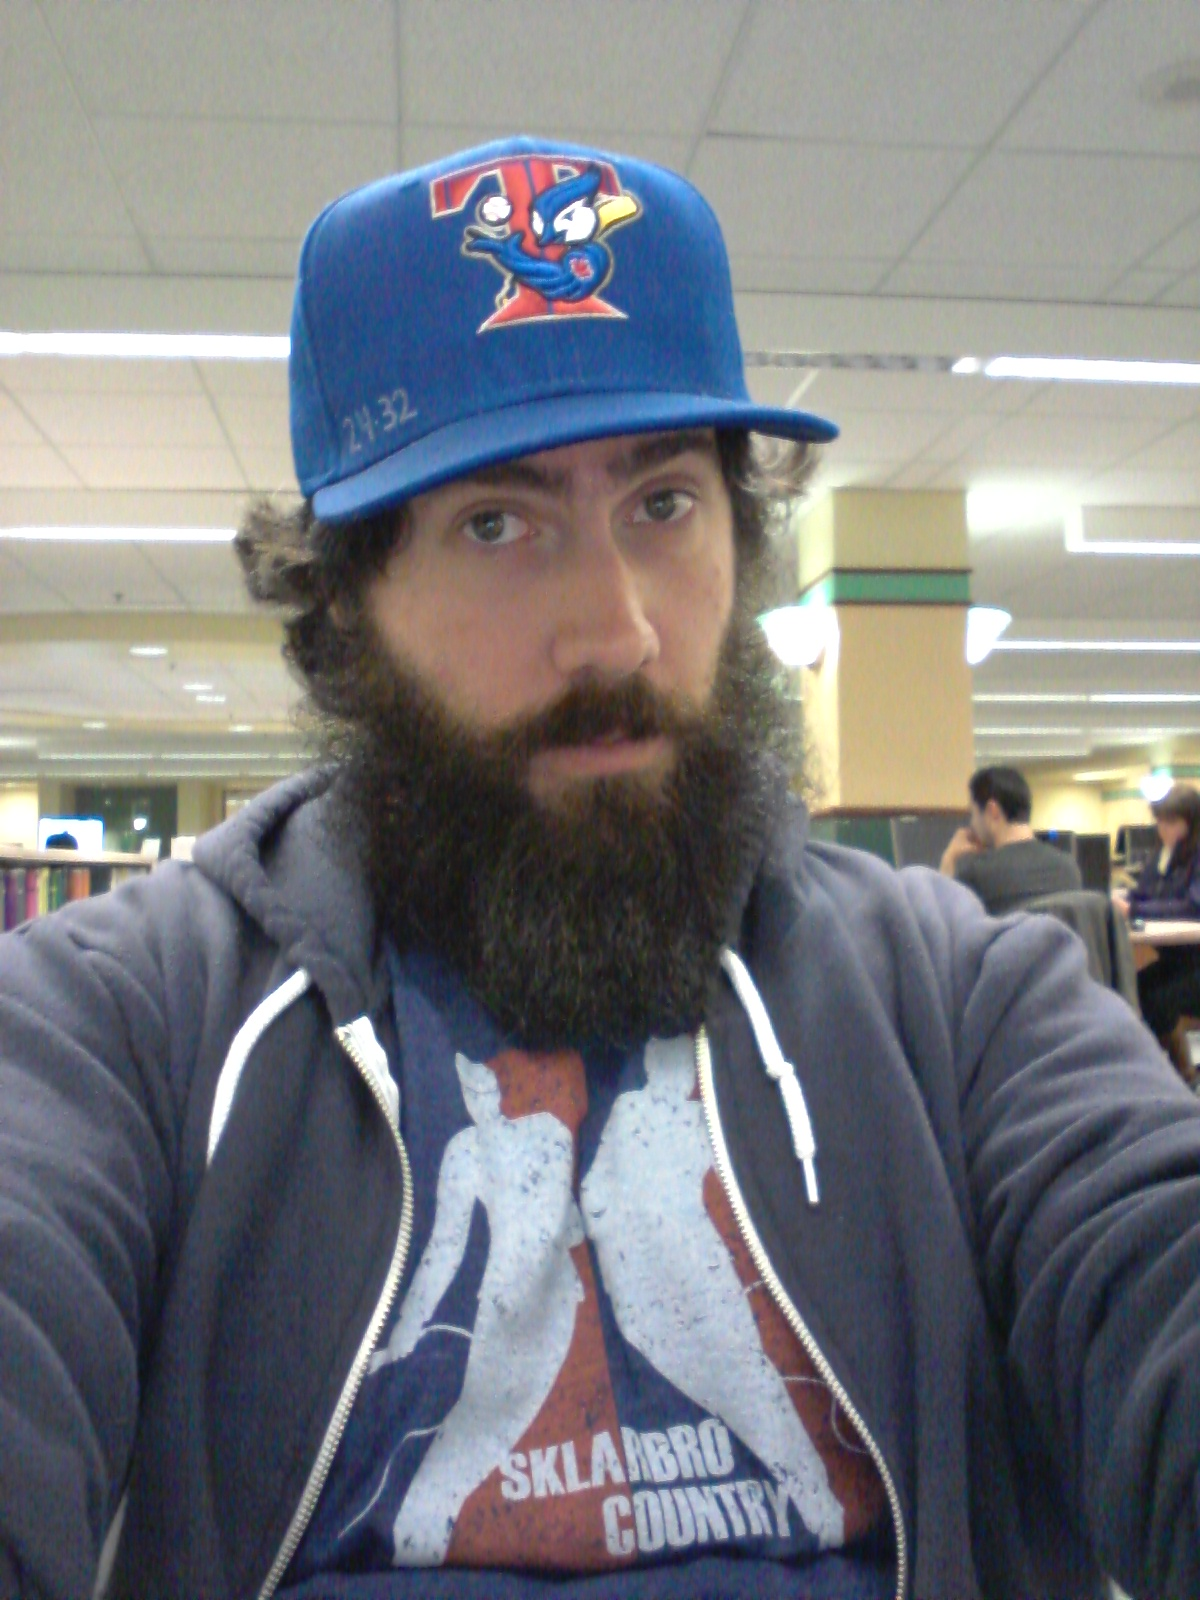 73b6a534b9c The 2003 Toronto Blue Jays cap came as a bit of a surprise to me  mostly  because they only used this cap for one year. It was an interesting concept  with ...